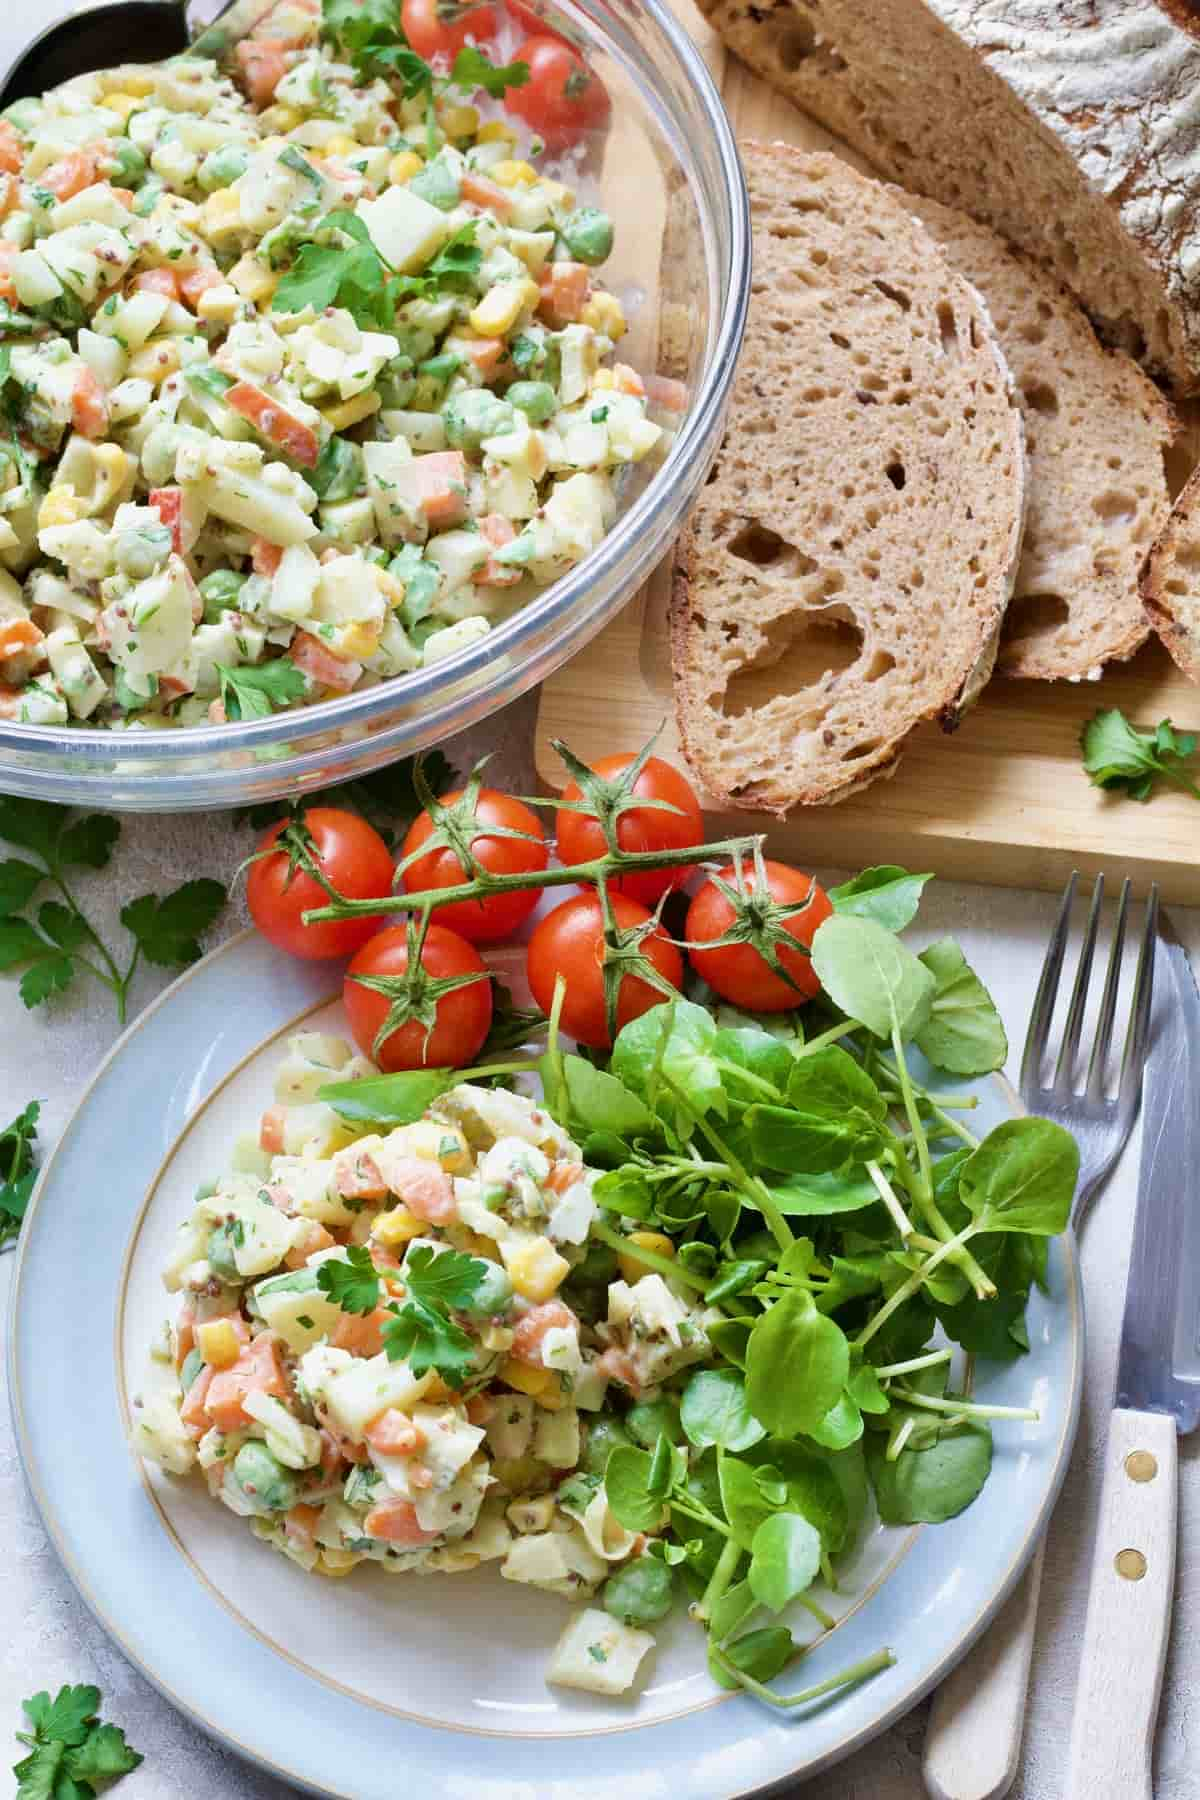 Russian salad portion with watercress and tomatoes.